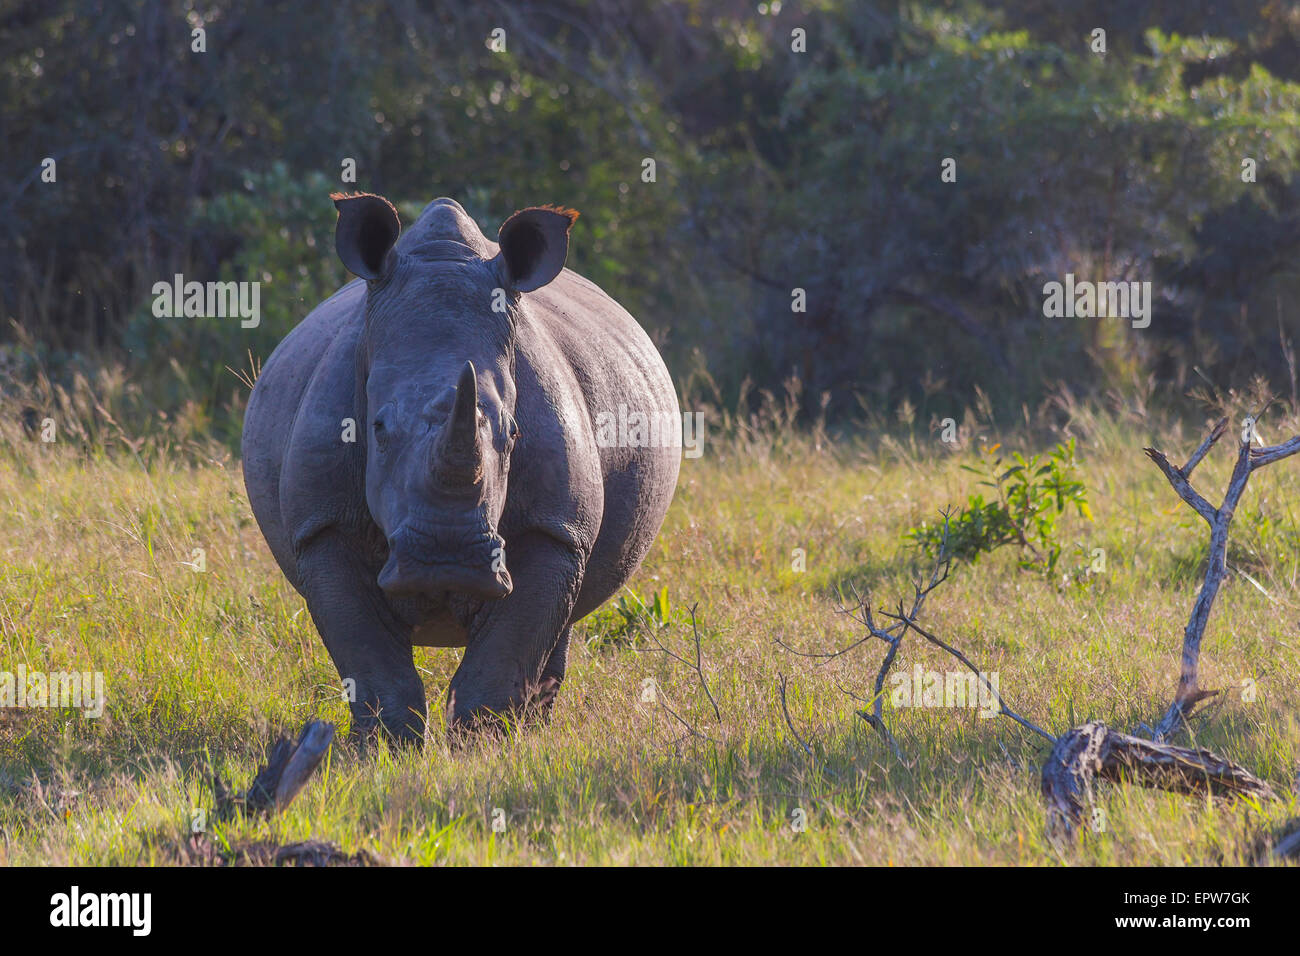 Rhino in the bush on the left in the early morning light - Stock Image